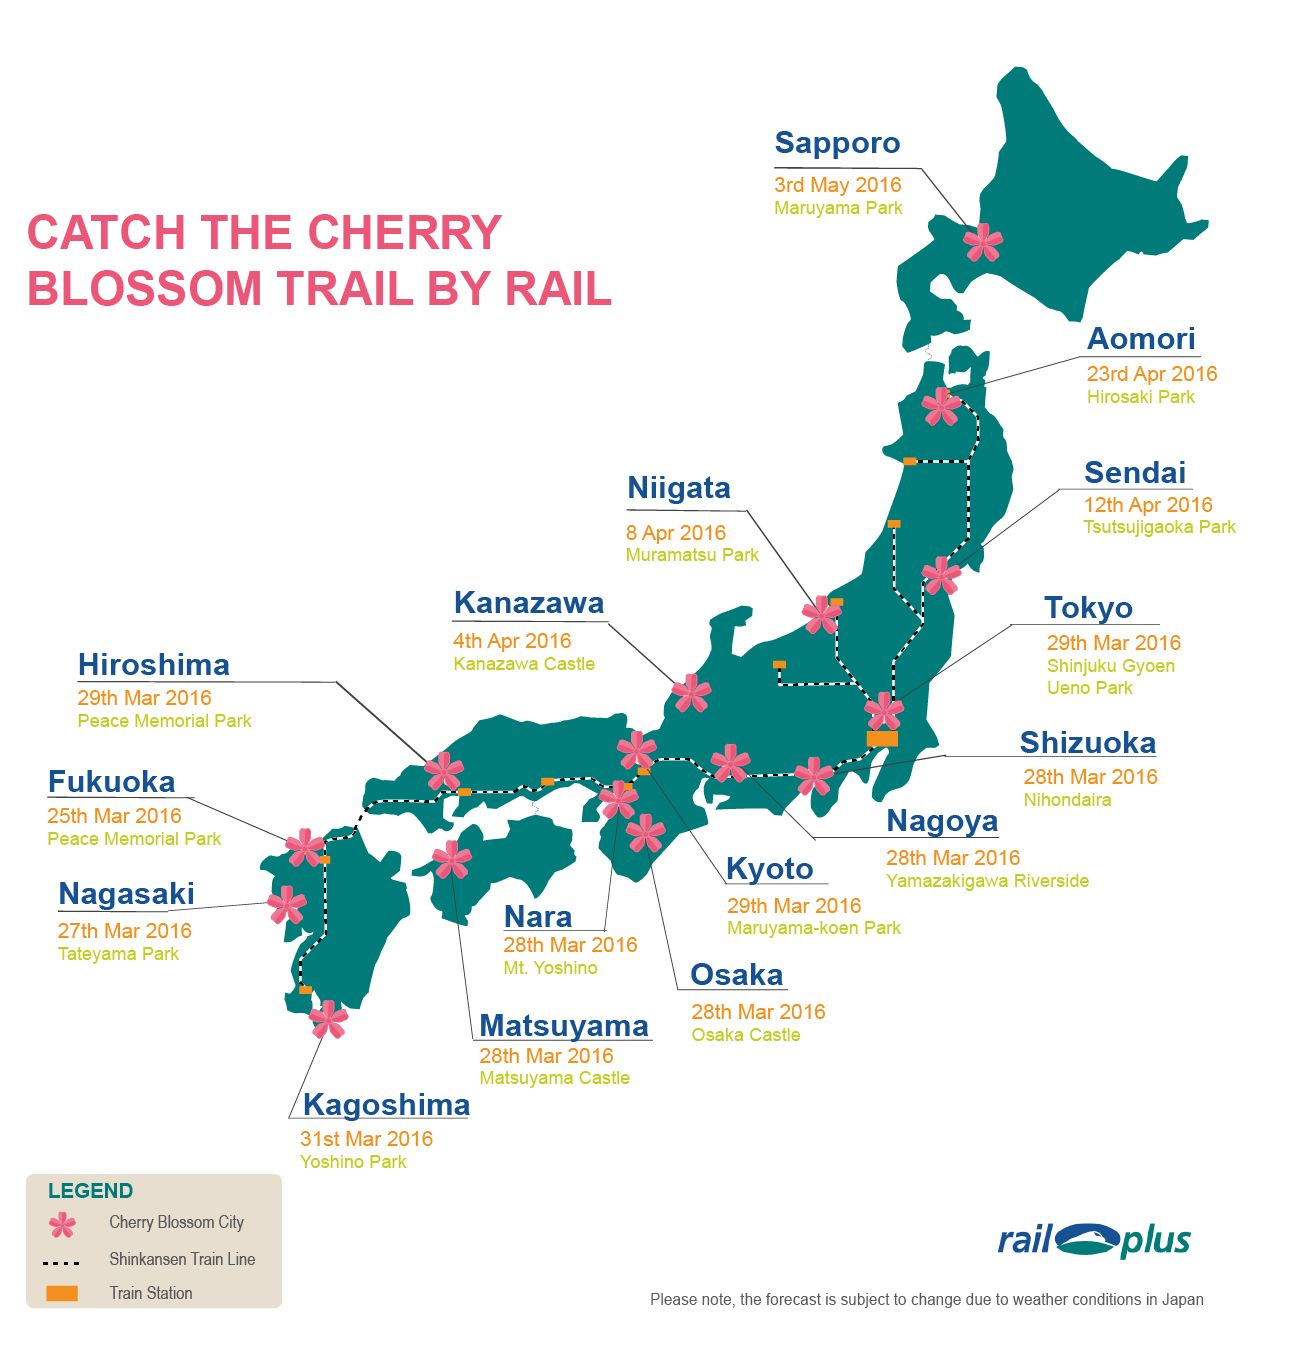 Cherry Blossom Map Japan Rail Plus new | Travels in 2019 ... on iris map, beach map, cherry blue, banana map, cocoa map, strawberry map, honeysuckle map, tree map, coconut map, pineapple map, coffee map, butterfly map, dragonfly map, marathon map, bamboo map, cherry blossoms bloom washington dc, champagne map,